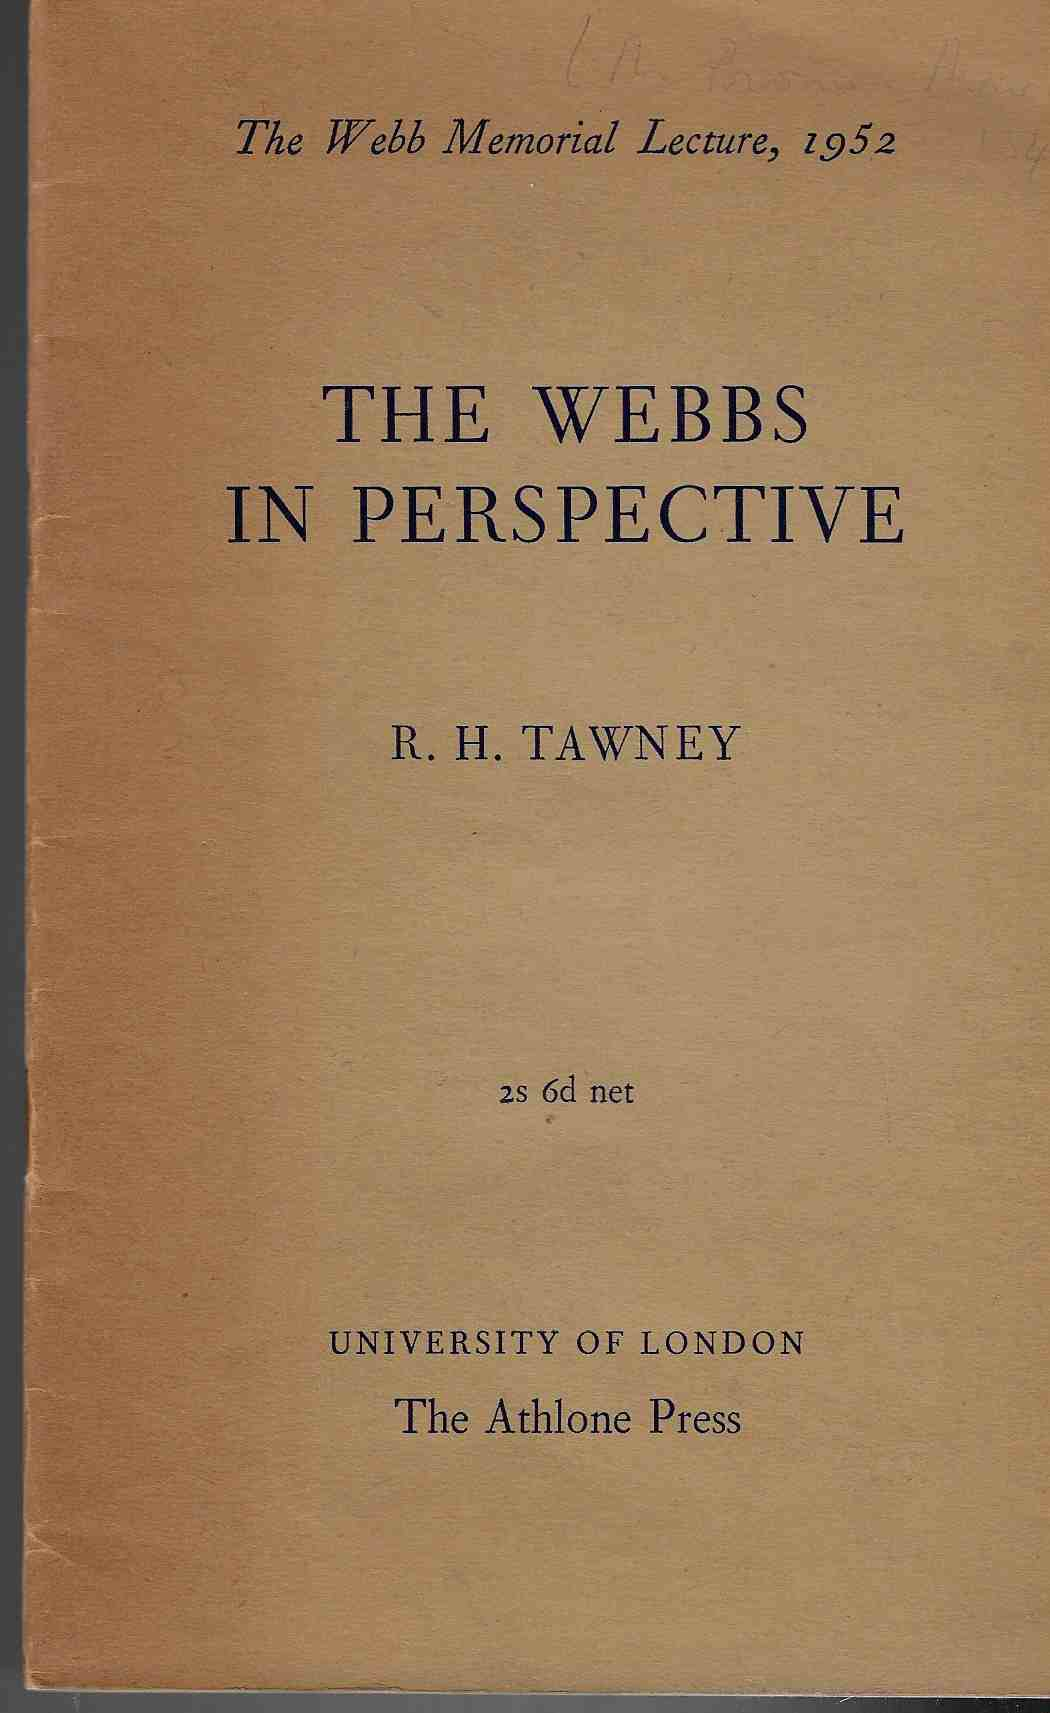 Image for The Webbs in Perspective (The Webb Memorial Lecture, 1952)